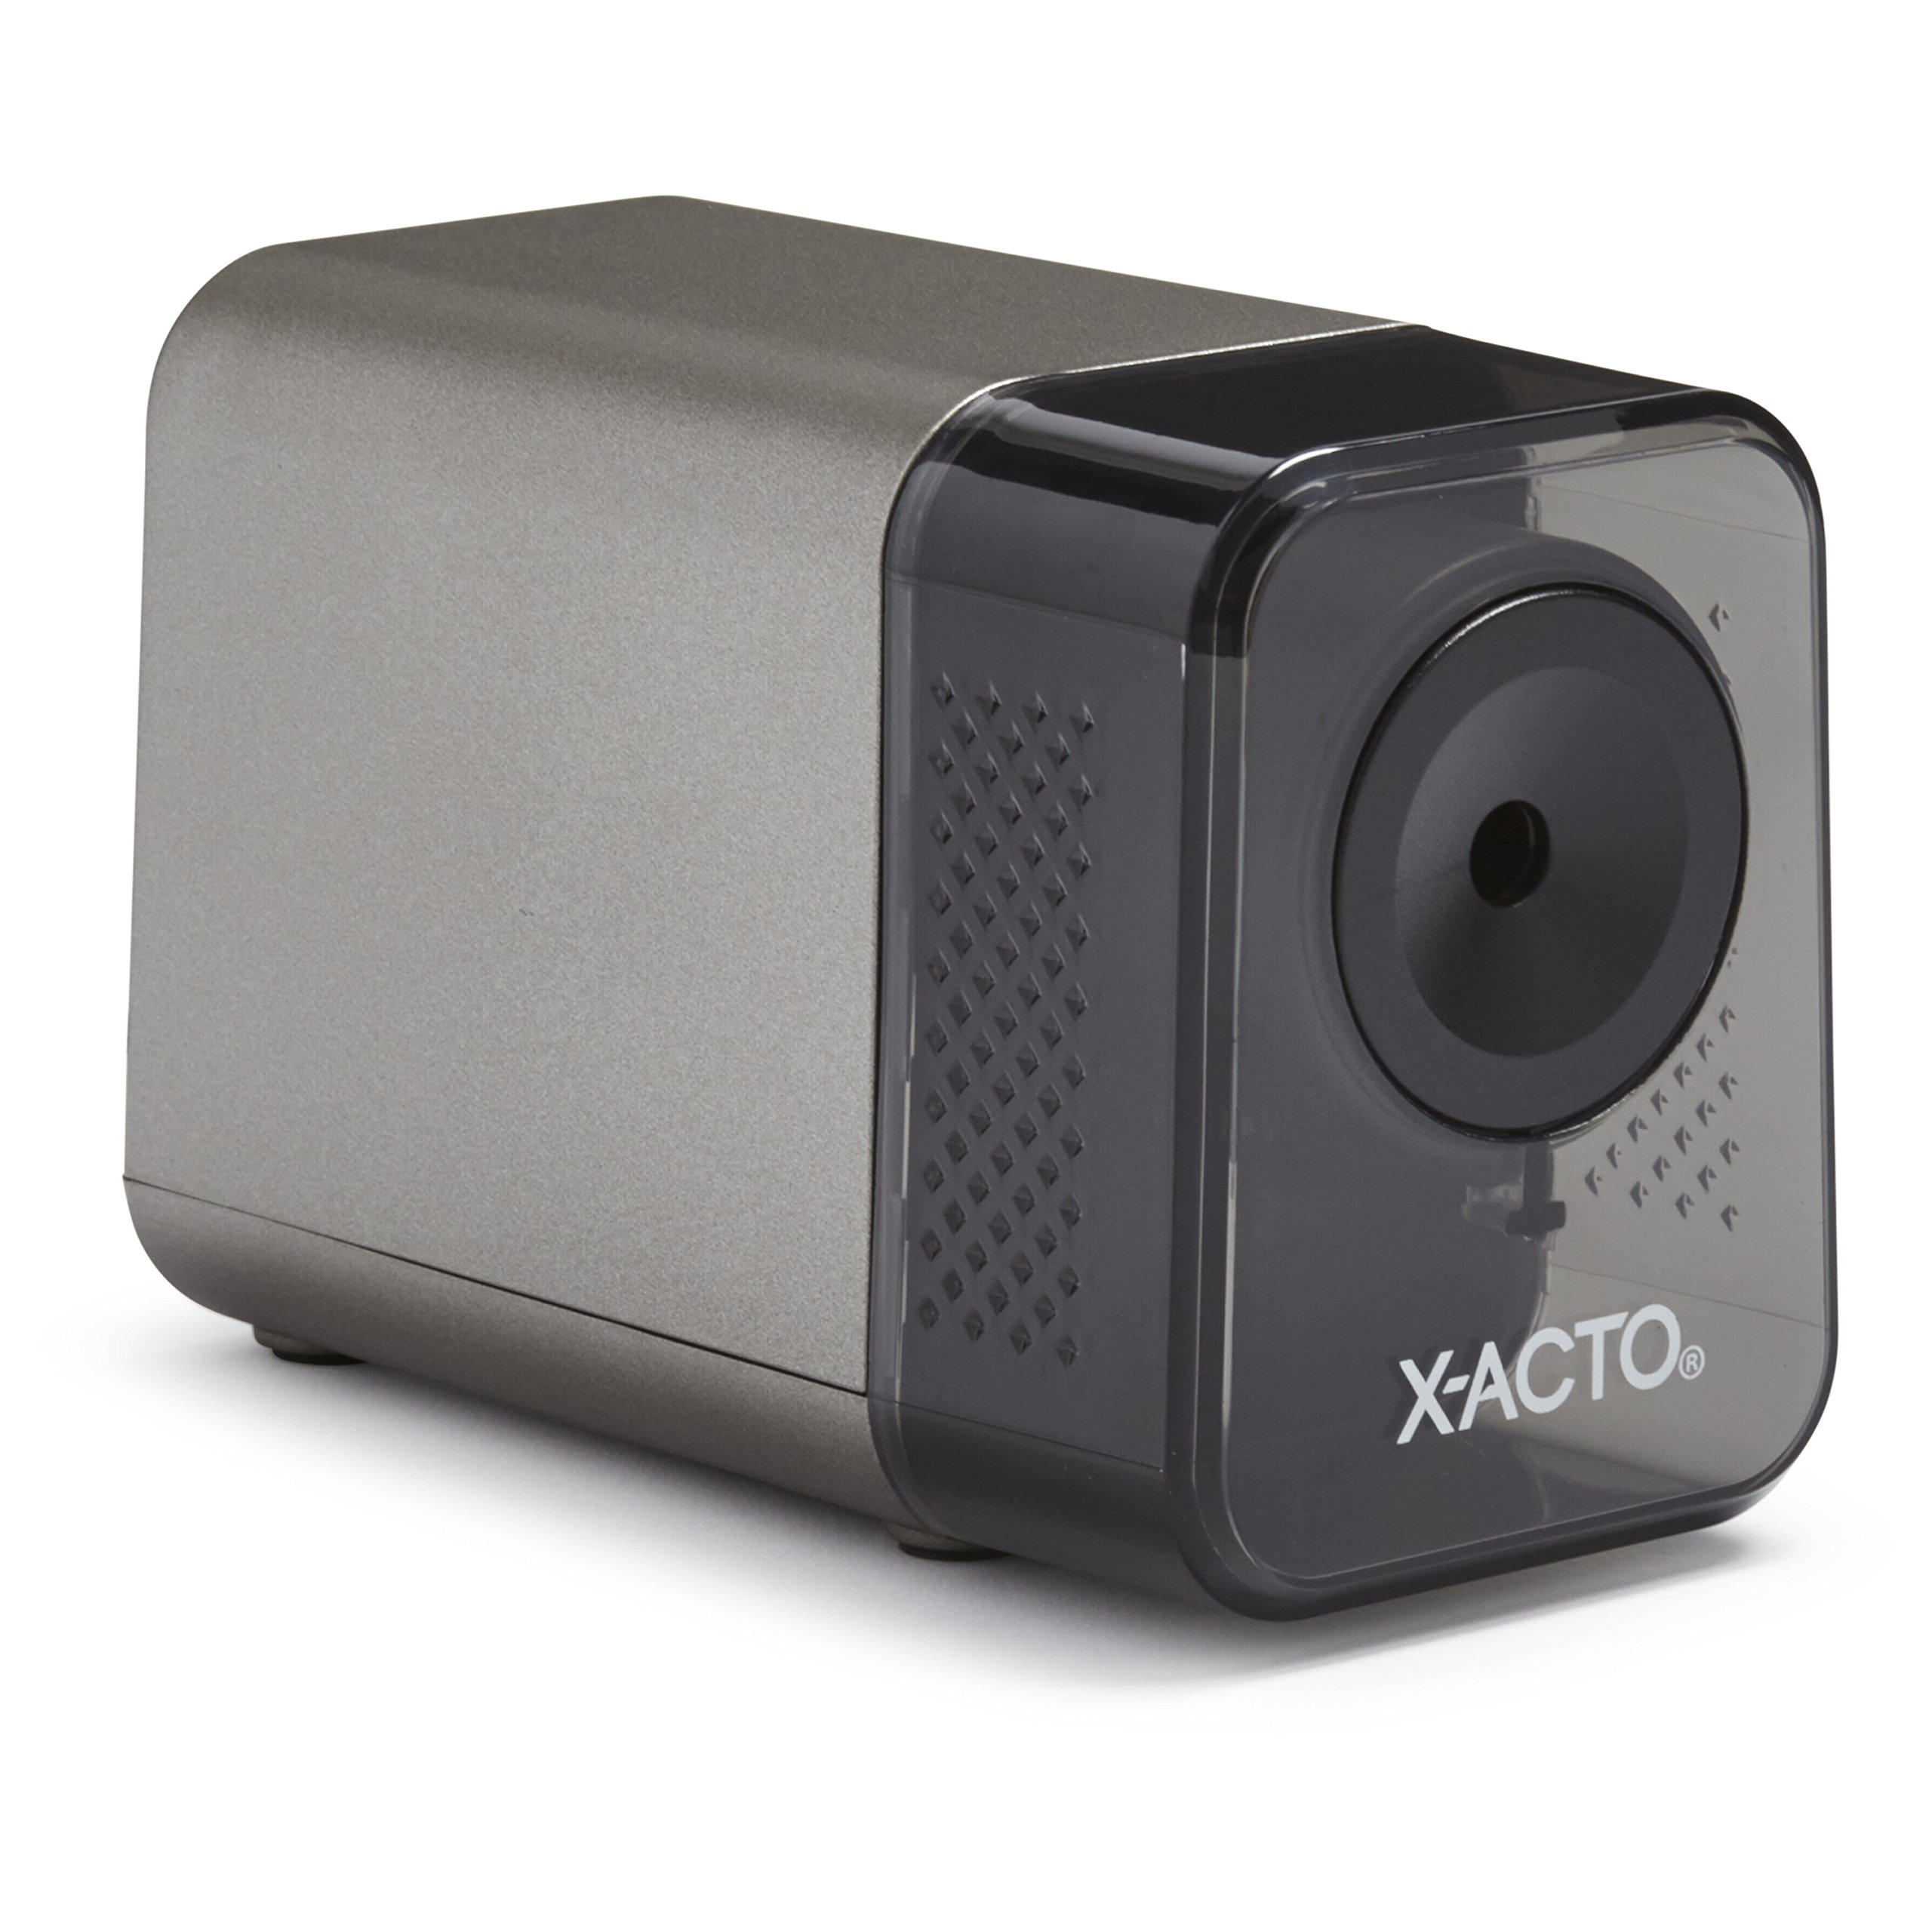 X-ACTO XLR Electric Pencil Sharpener by X-Acto